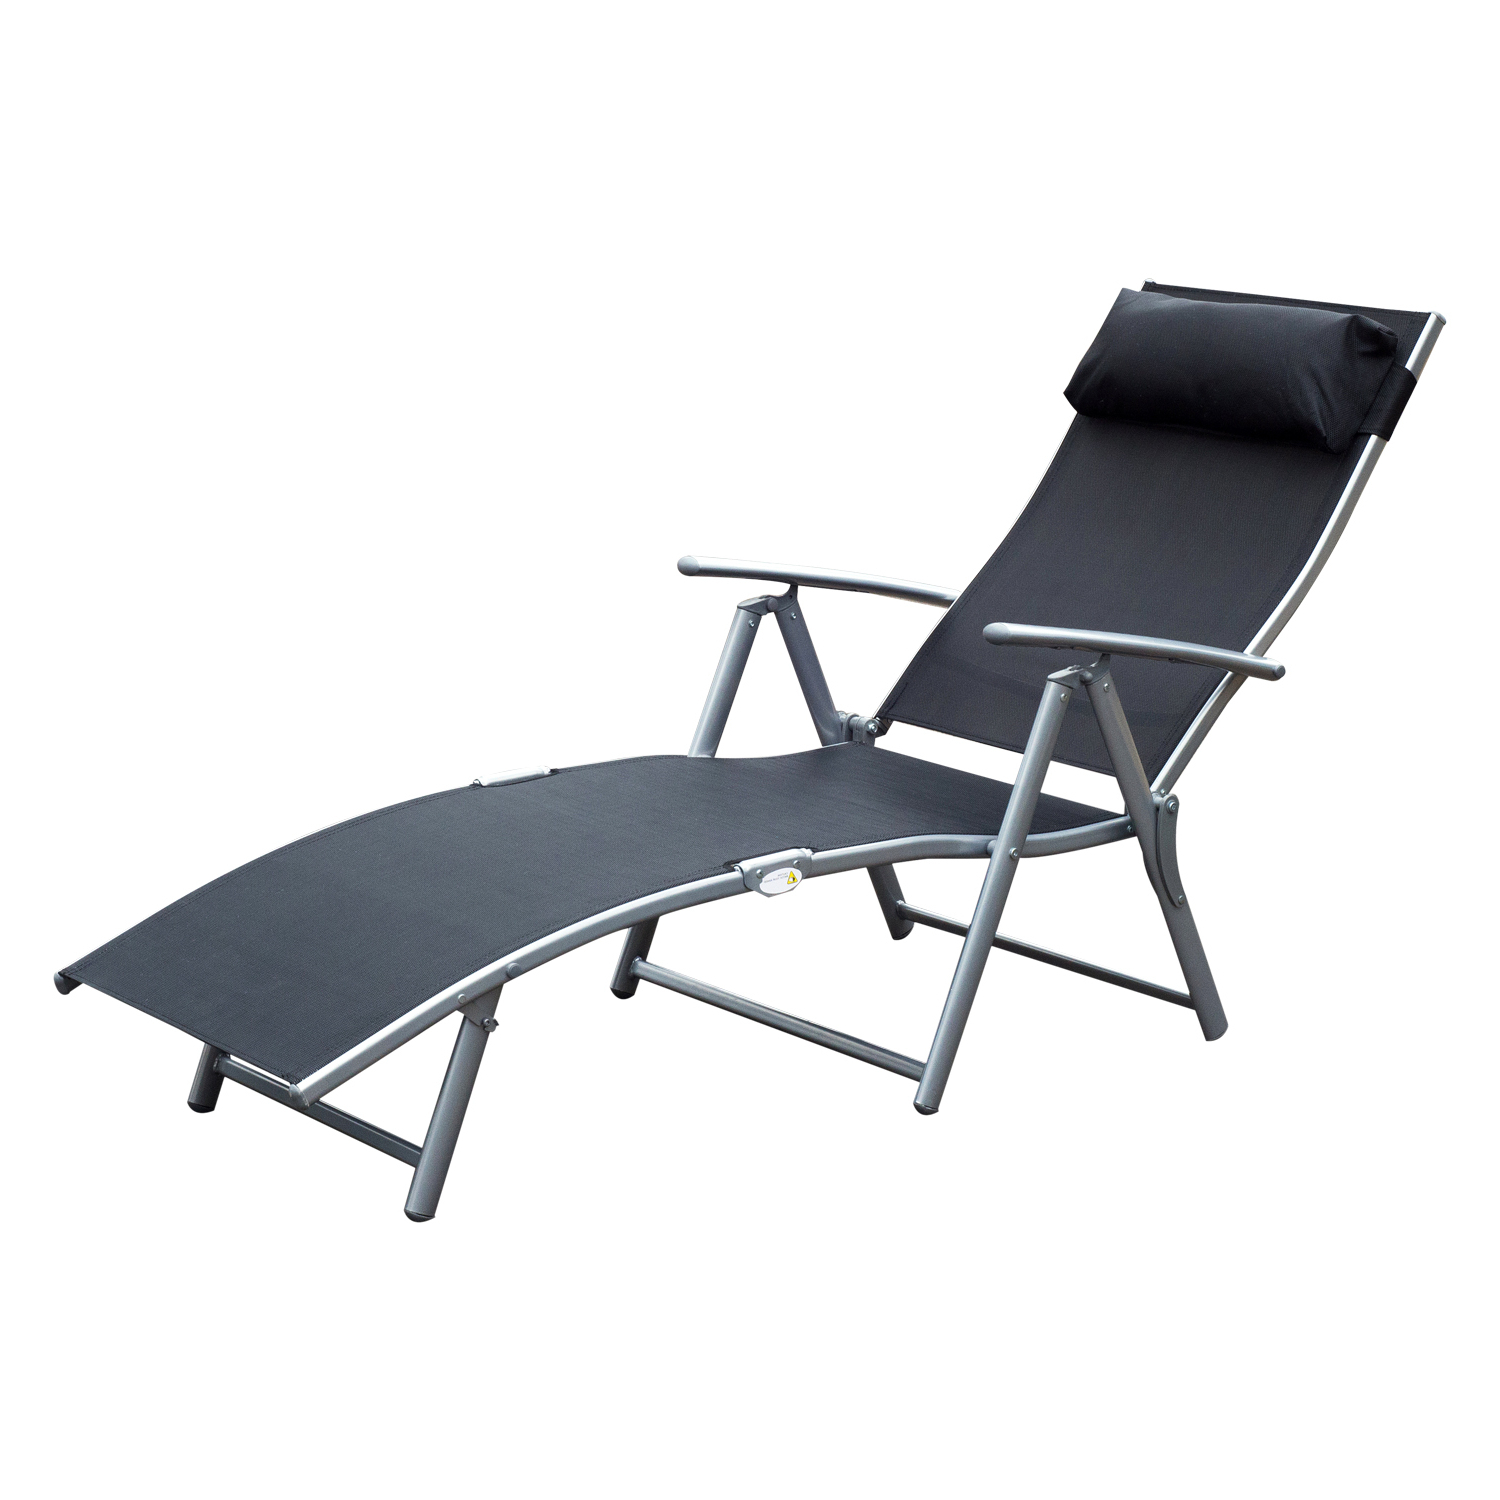 Outsunny Sling Fabric Patio Reclining Chaise Lounge Chair Folding 5  Position Adjustable Outdoor Deck With Cushion – Black Inside Most Recently Released Adjustable Sling Fabric Patio Chaise Lounges (View 22 of 25)